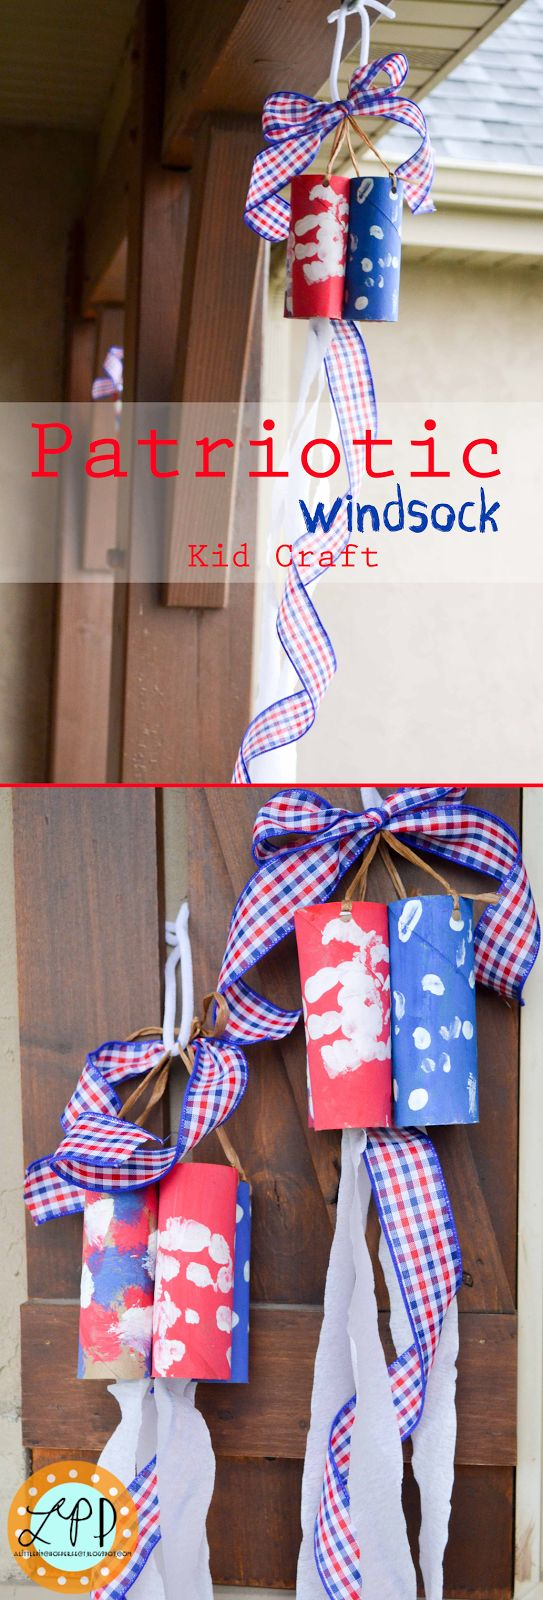 Cutest Patriotic Windsock Kid Craft!!!-4th of July, Flag Day, Memorial Day, Pioneer Day-made with toilet paper rolls